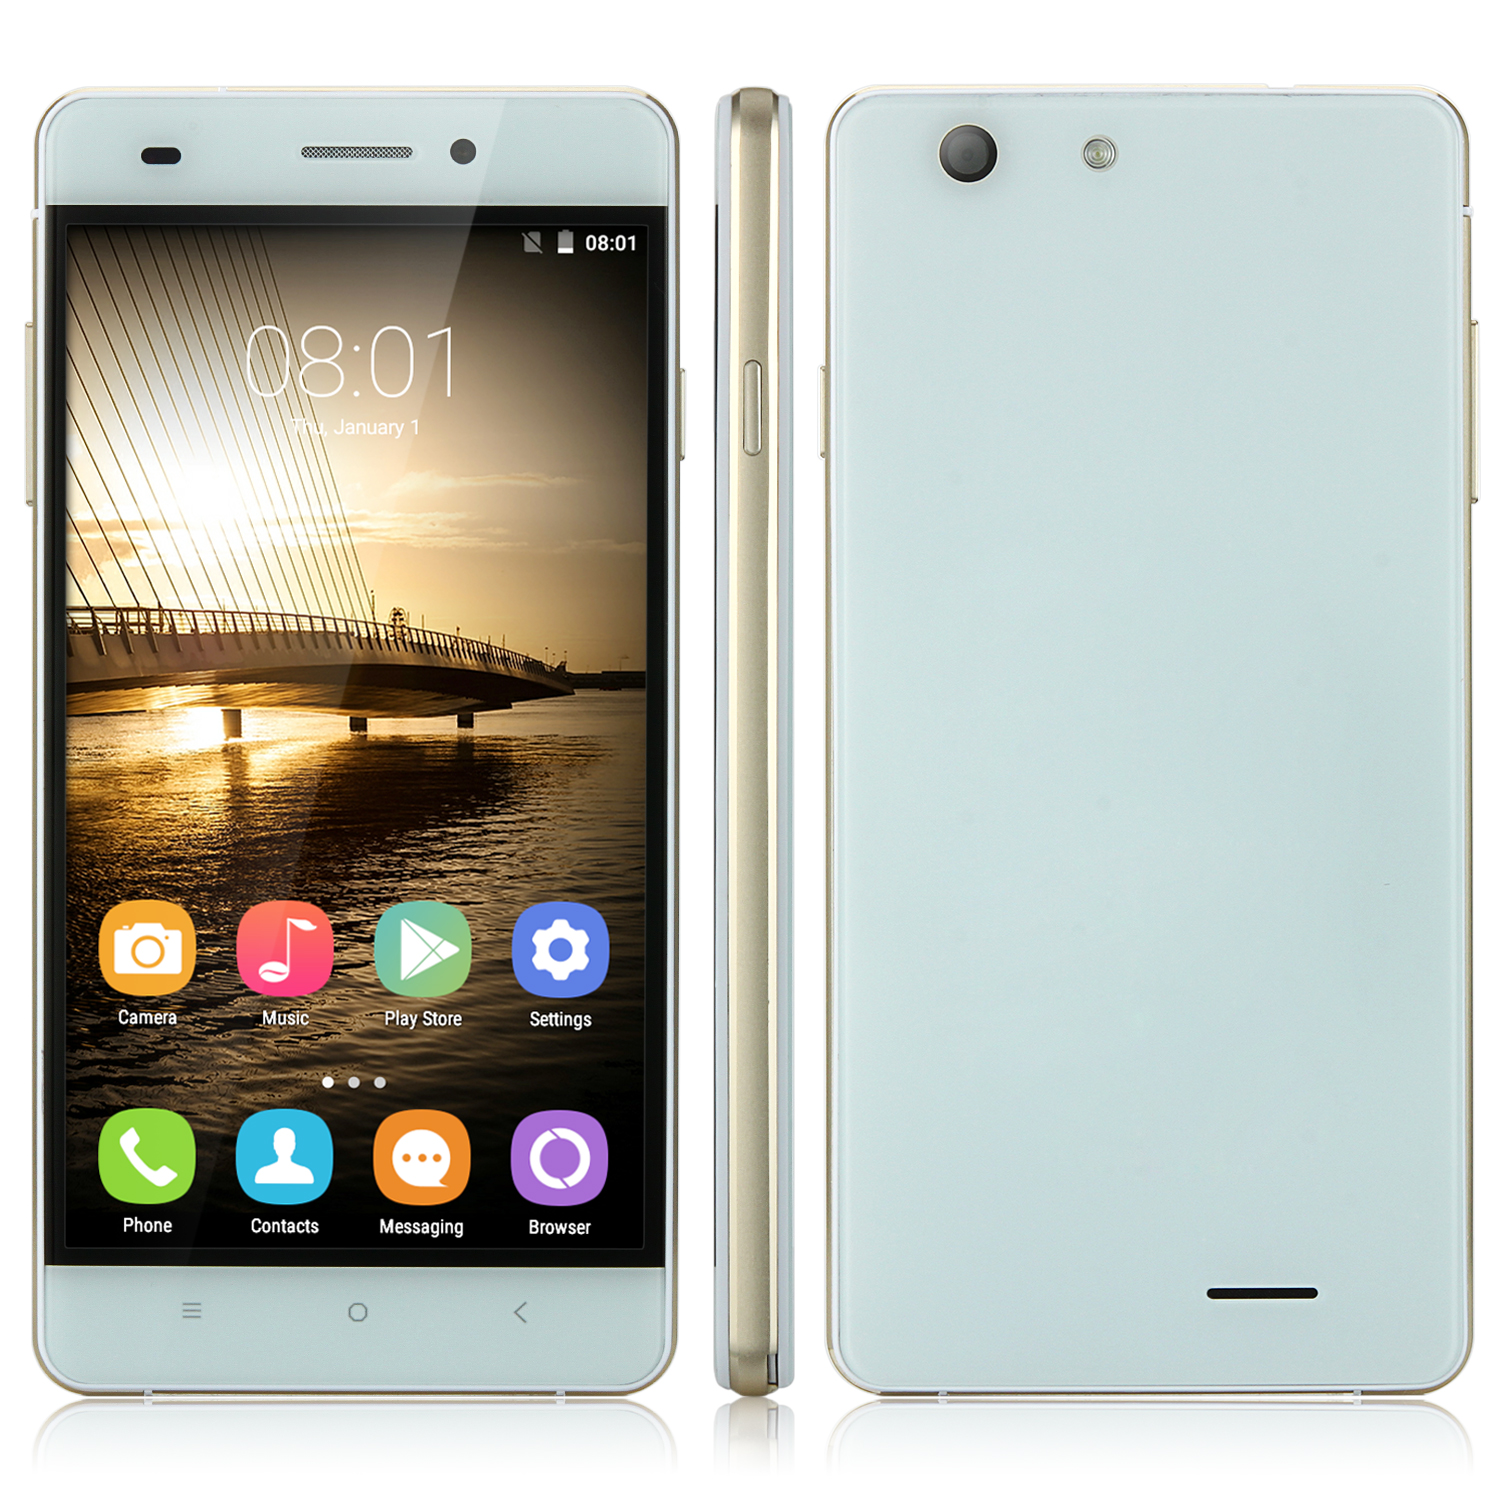 OUKITEL U2 Smartphone Double Glass 4G LTE 64bit Quad Core 5.0 Inch Android 5.1 - White